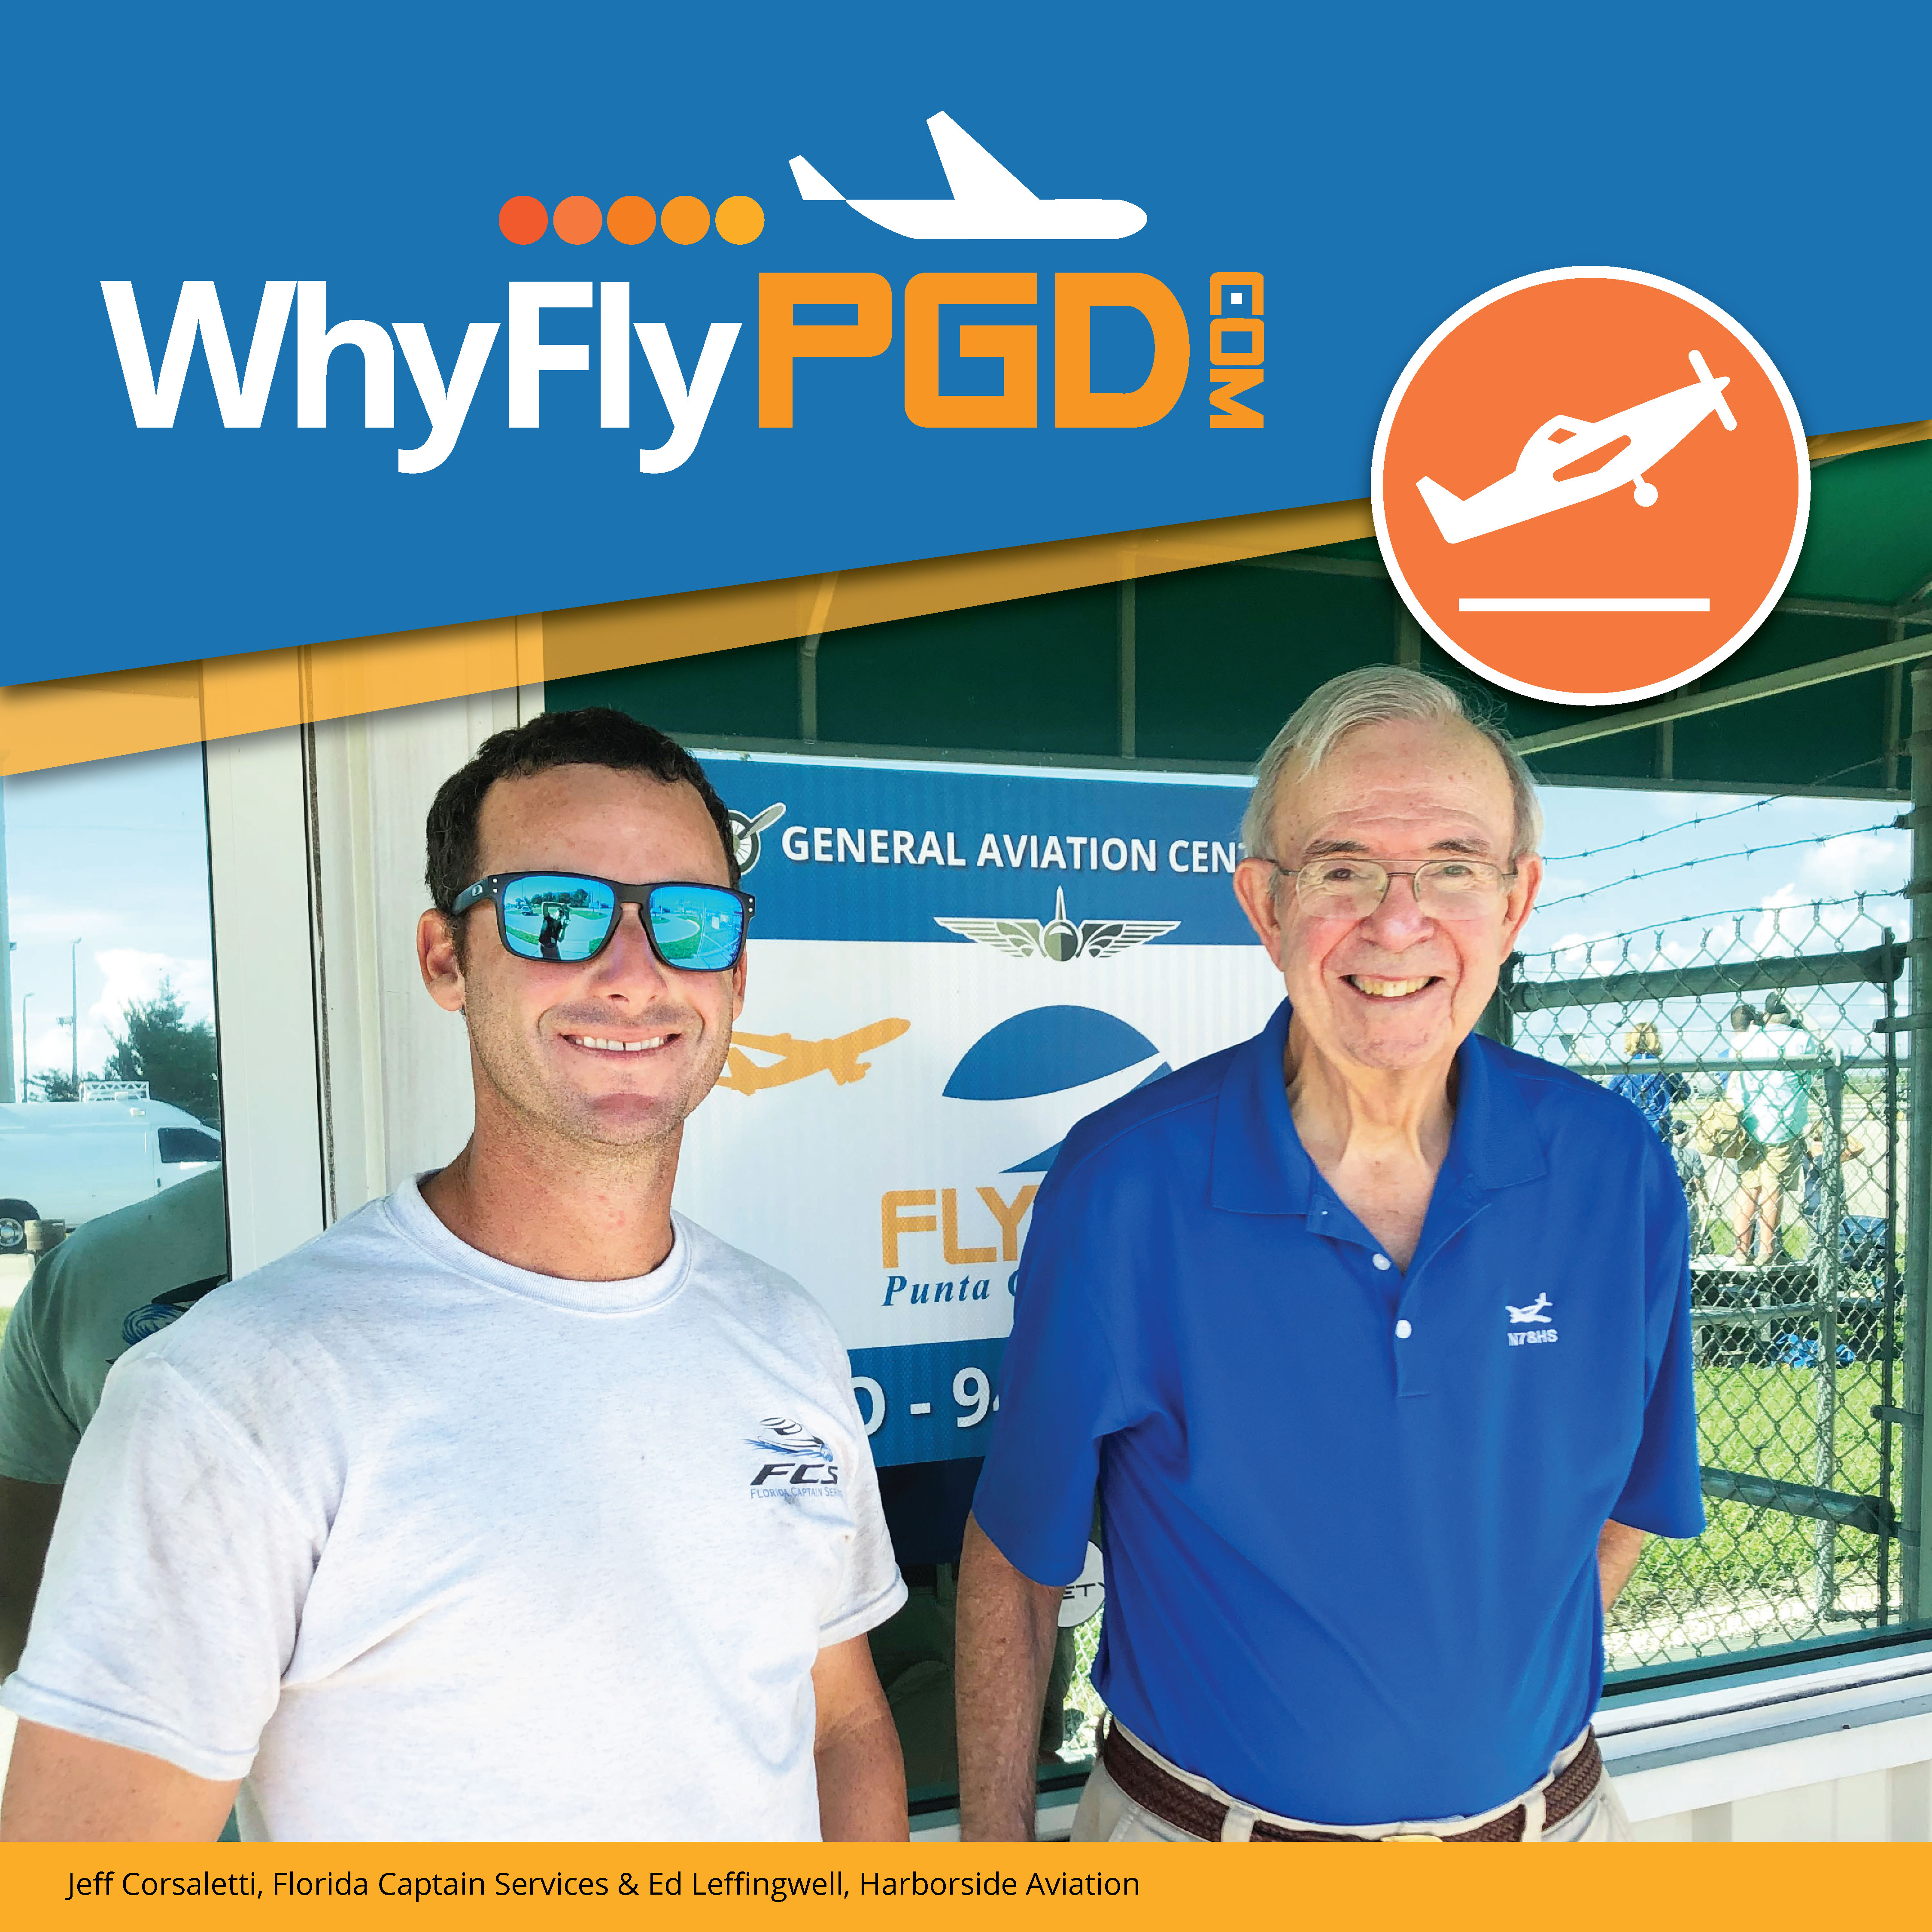 Photo of Jeff Corsaletti from Florida Captain Services and Ed Leffingwell from Harborside Aviation for the Why Fly PGD Campaign